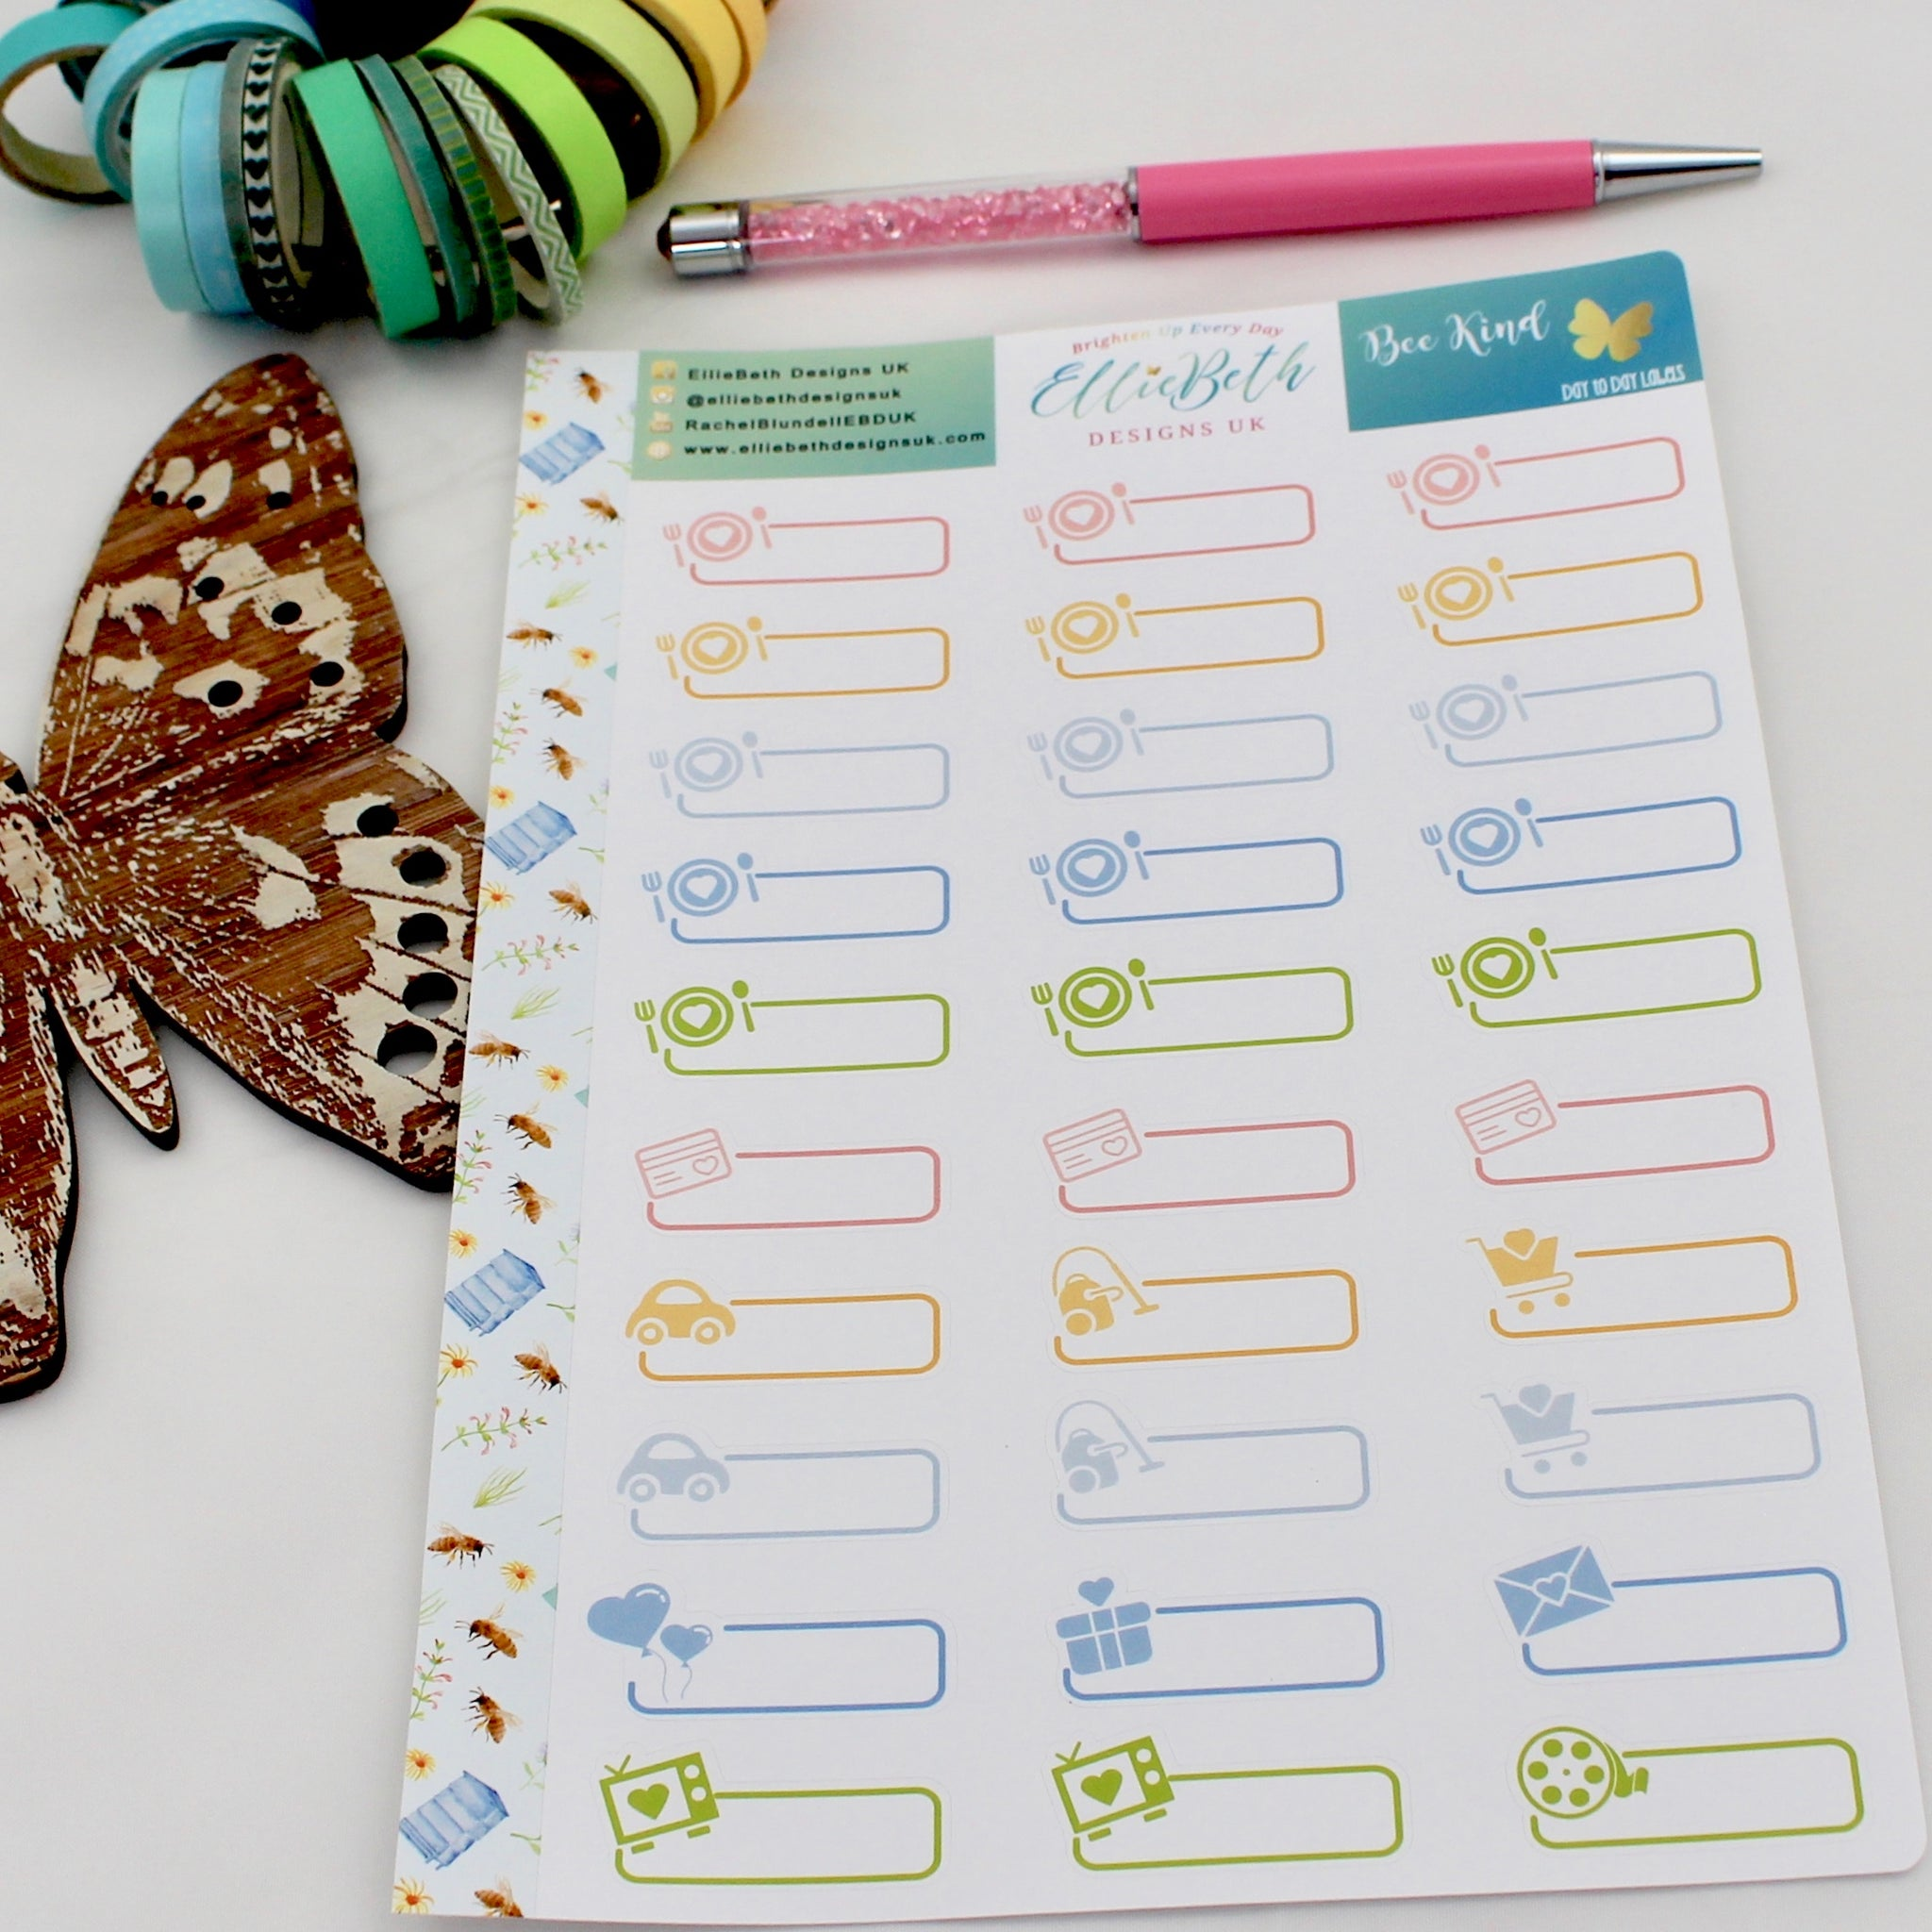 'Bee Kind' - Day to Day Labels - A5 binder ready planner stickers